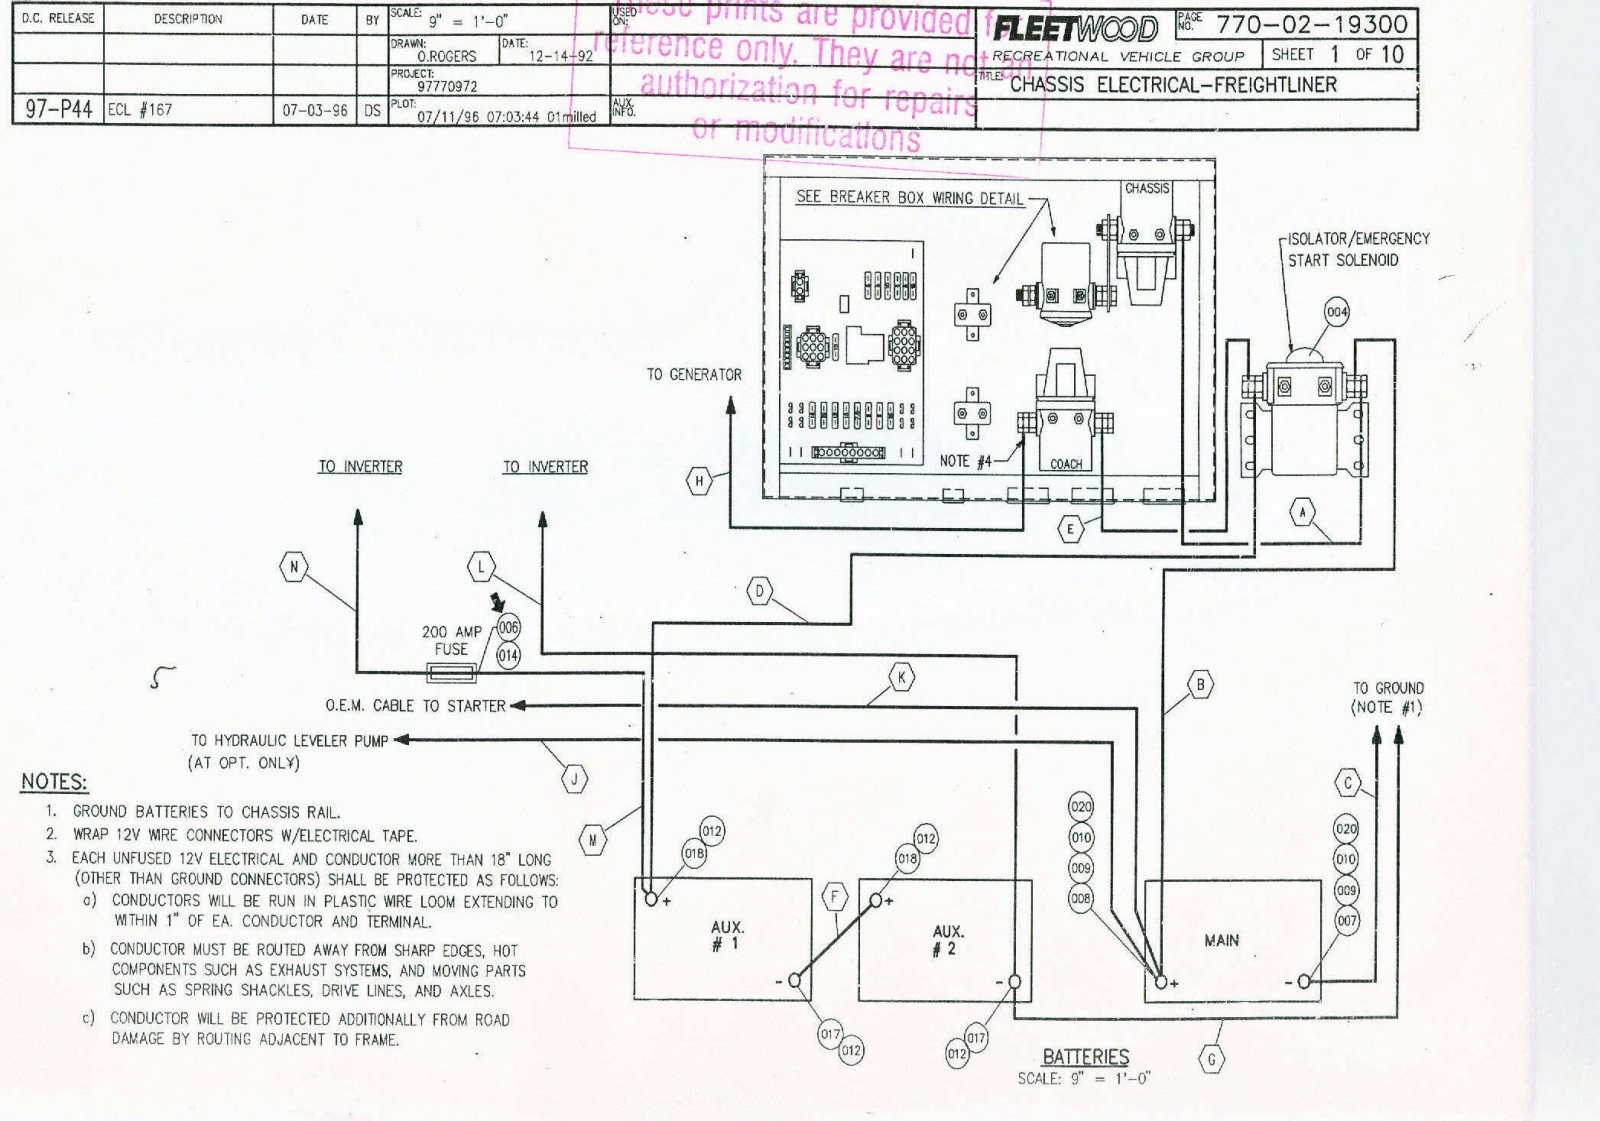 Fleetwood Bounder Motorhome Wiring Diagram | Online Wiring Diagram